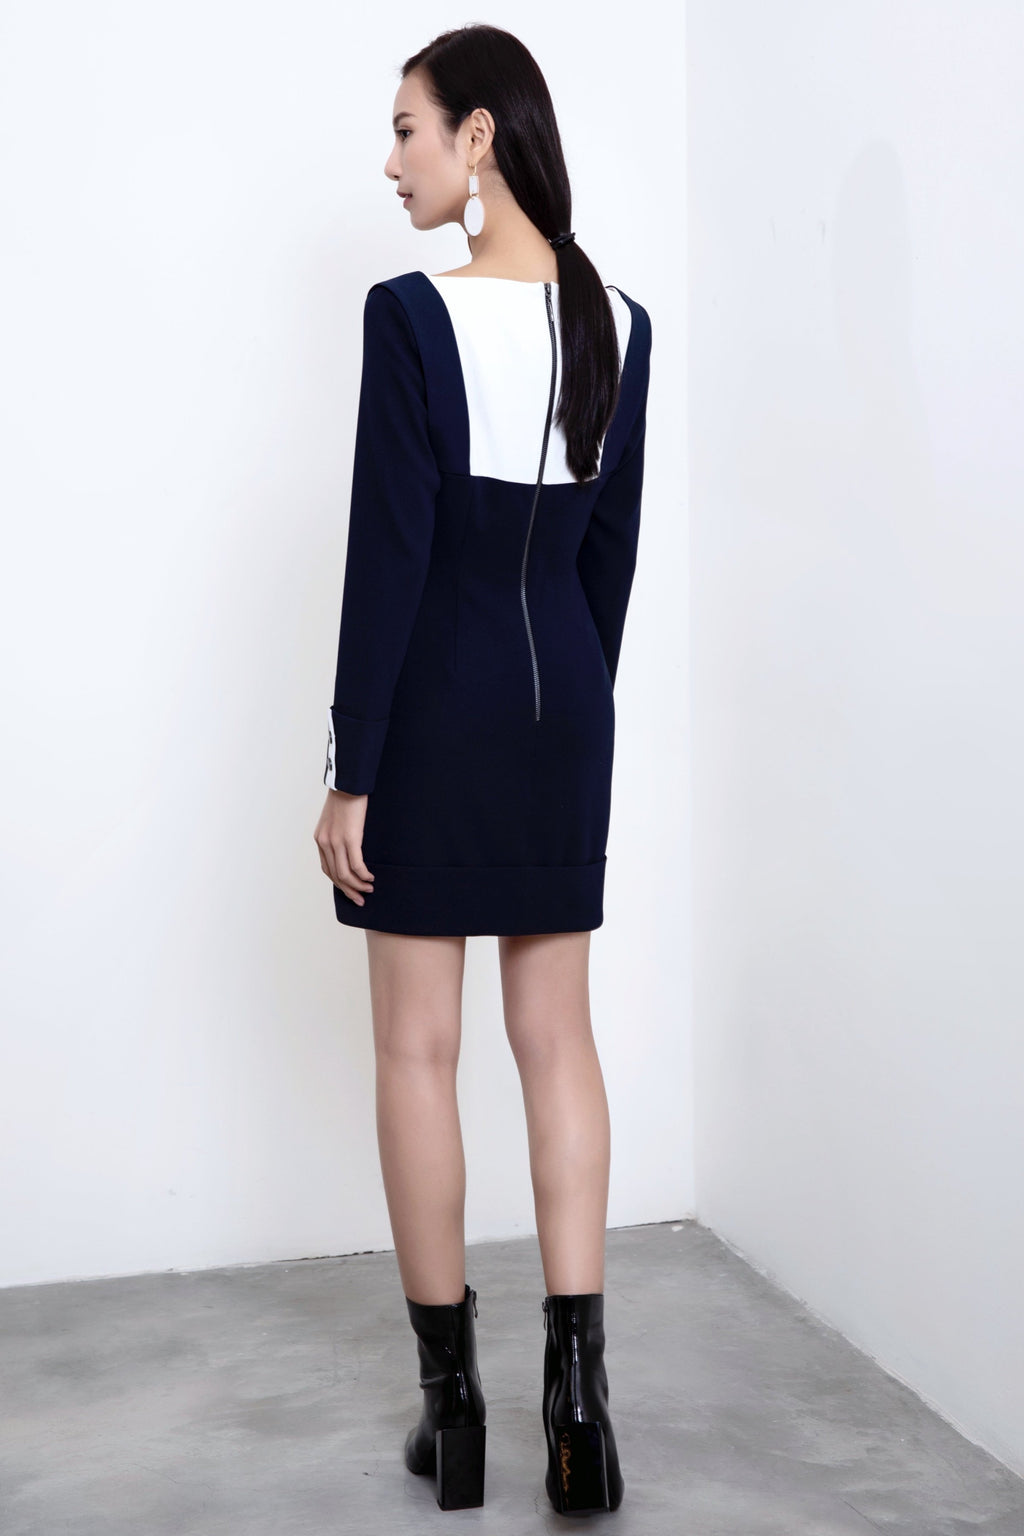 FEVER WANG square collar colorblock dress